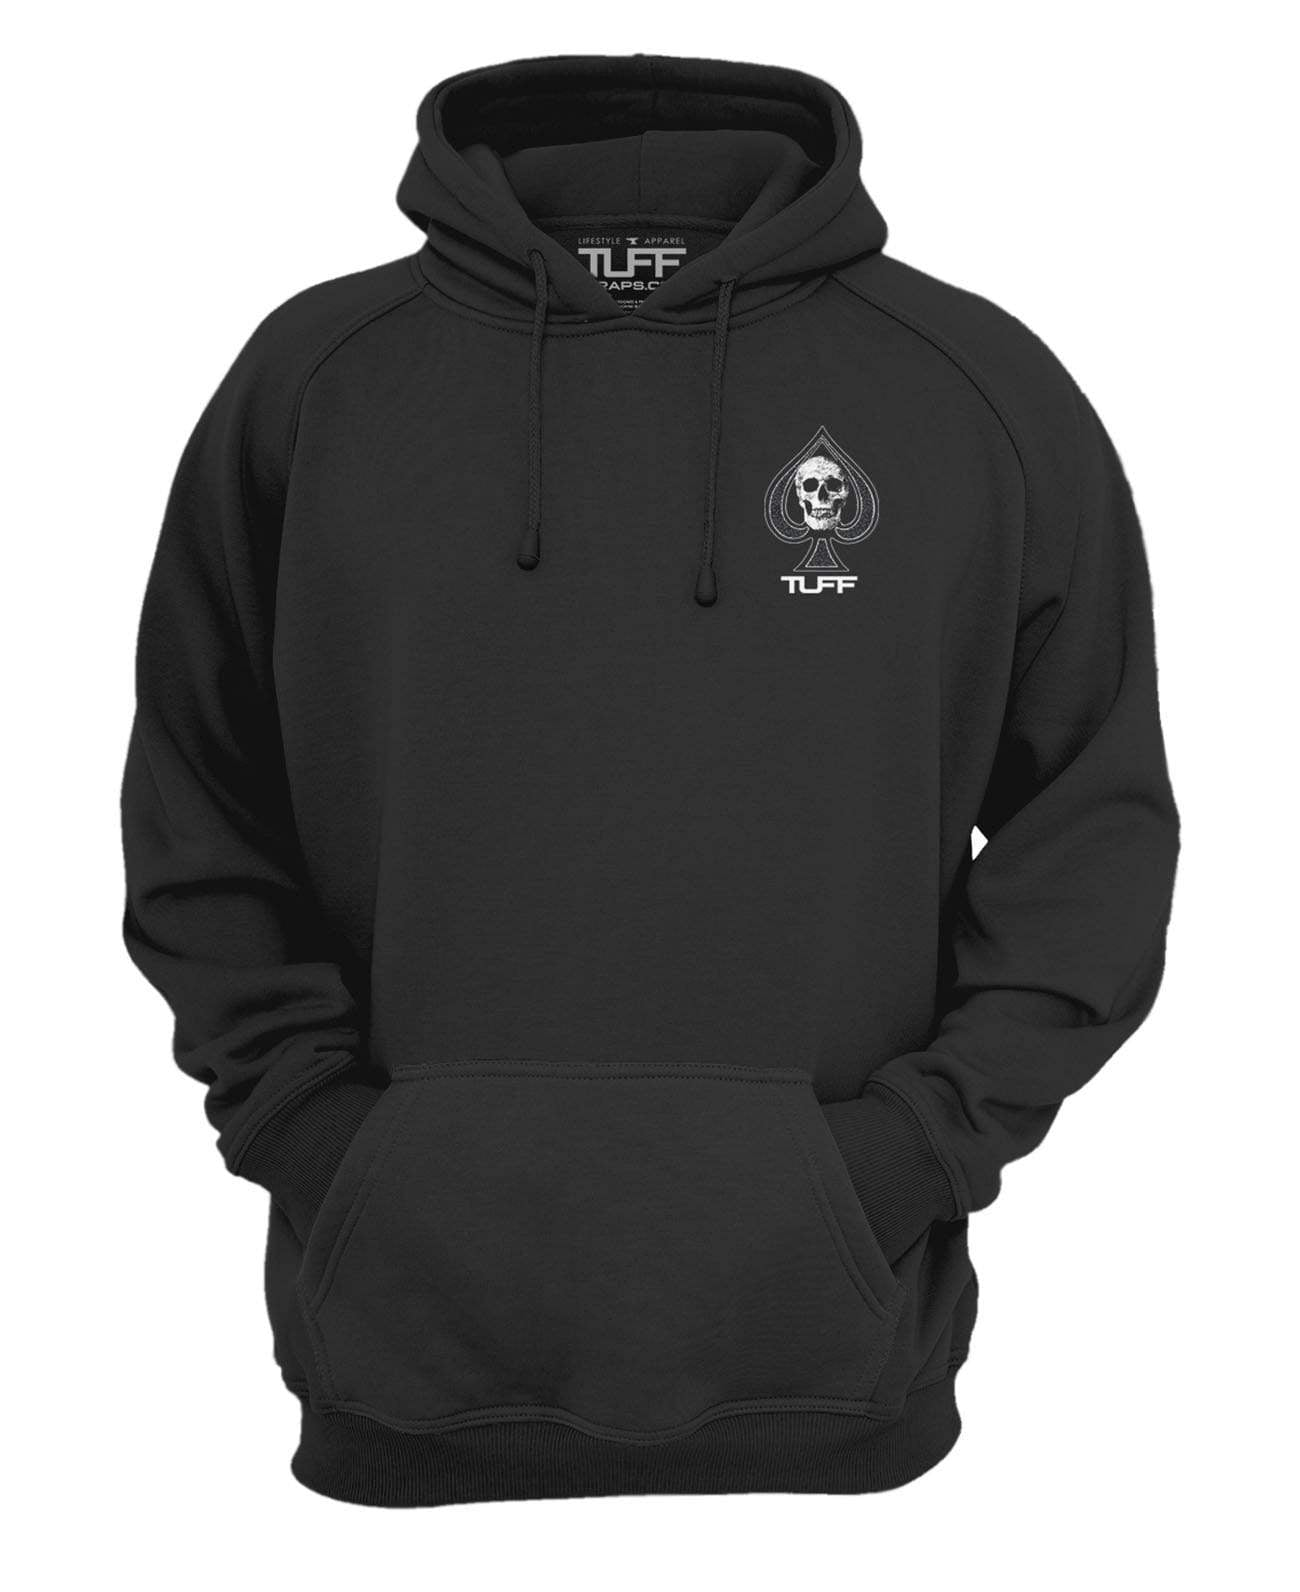 Aces of TUFF Hooded Sweatshirt TuffWraps.com